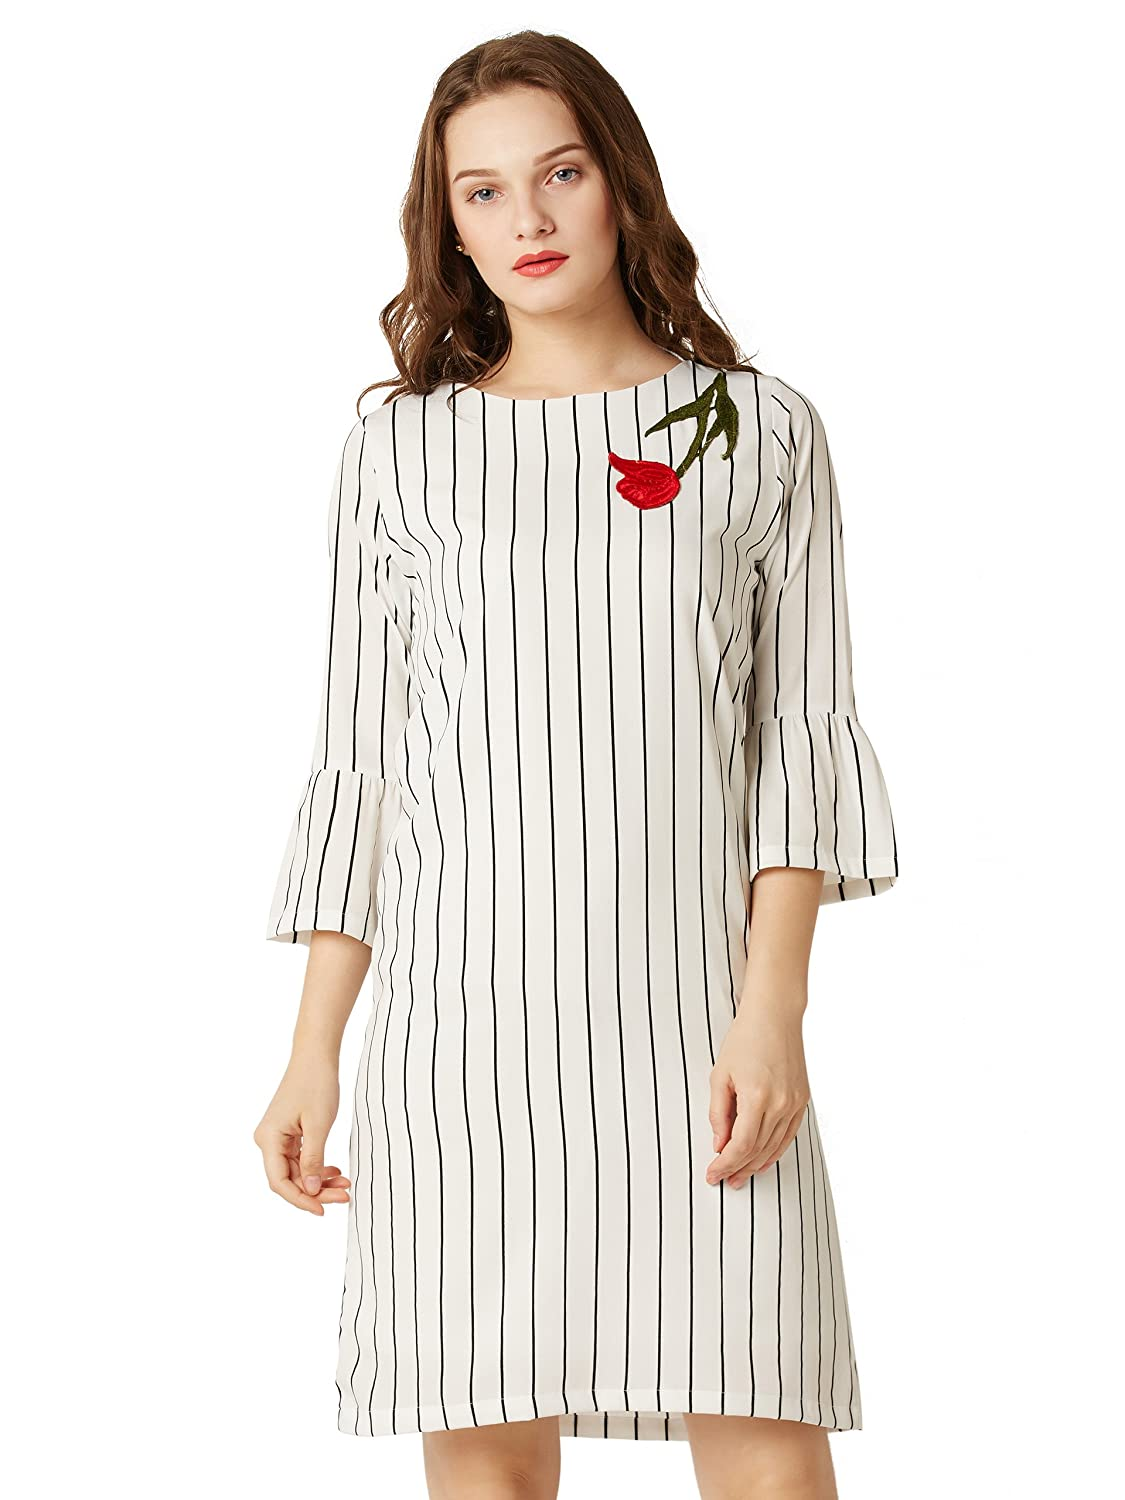 40b75611e73 Miss Chase Women s Black and White Striped Shift Dress  Amazon.in  Clothing    Accessories